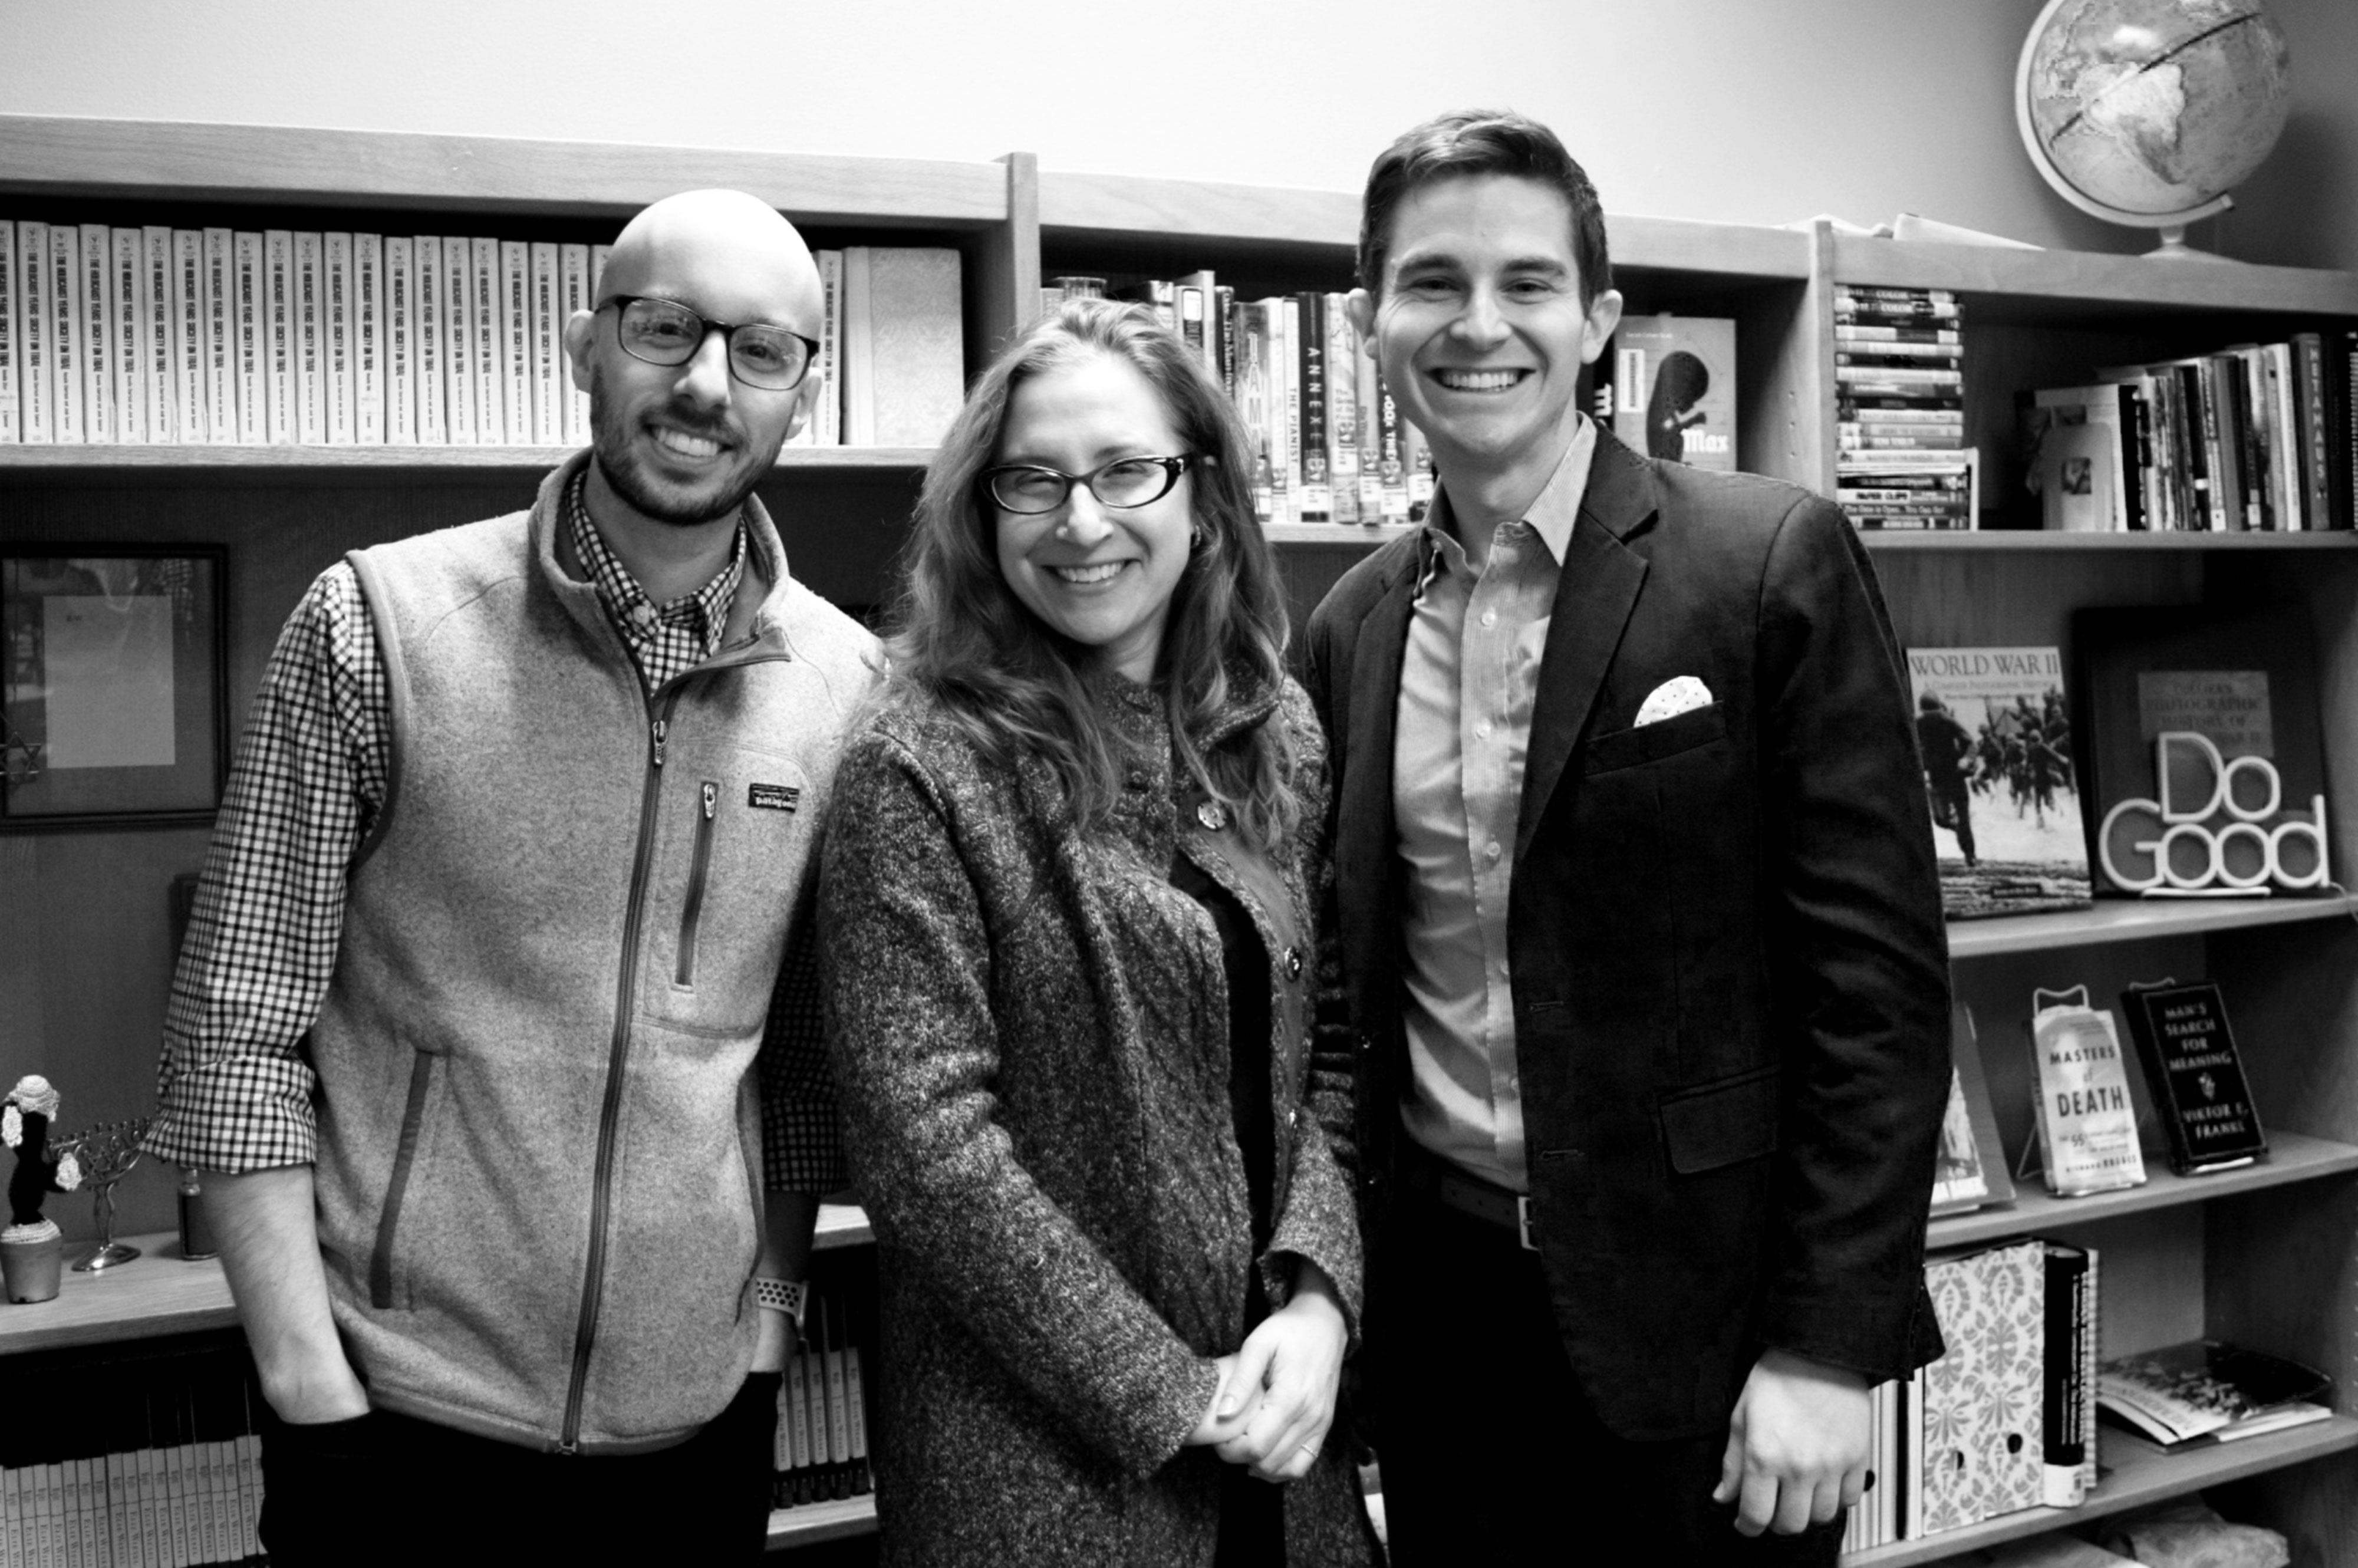 From left to right: LIGHT Founder Nick Haberman, Lauren Bairnsfather, and David Estrin.